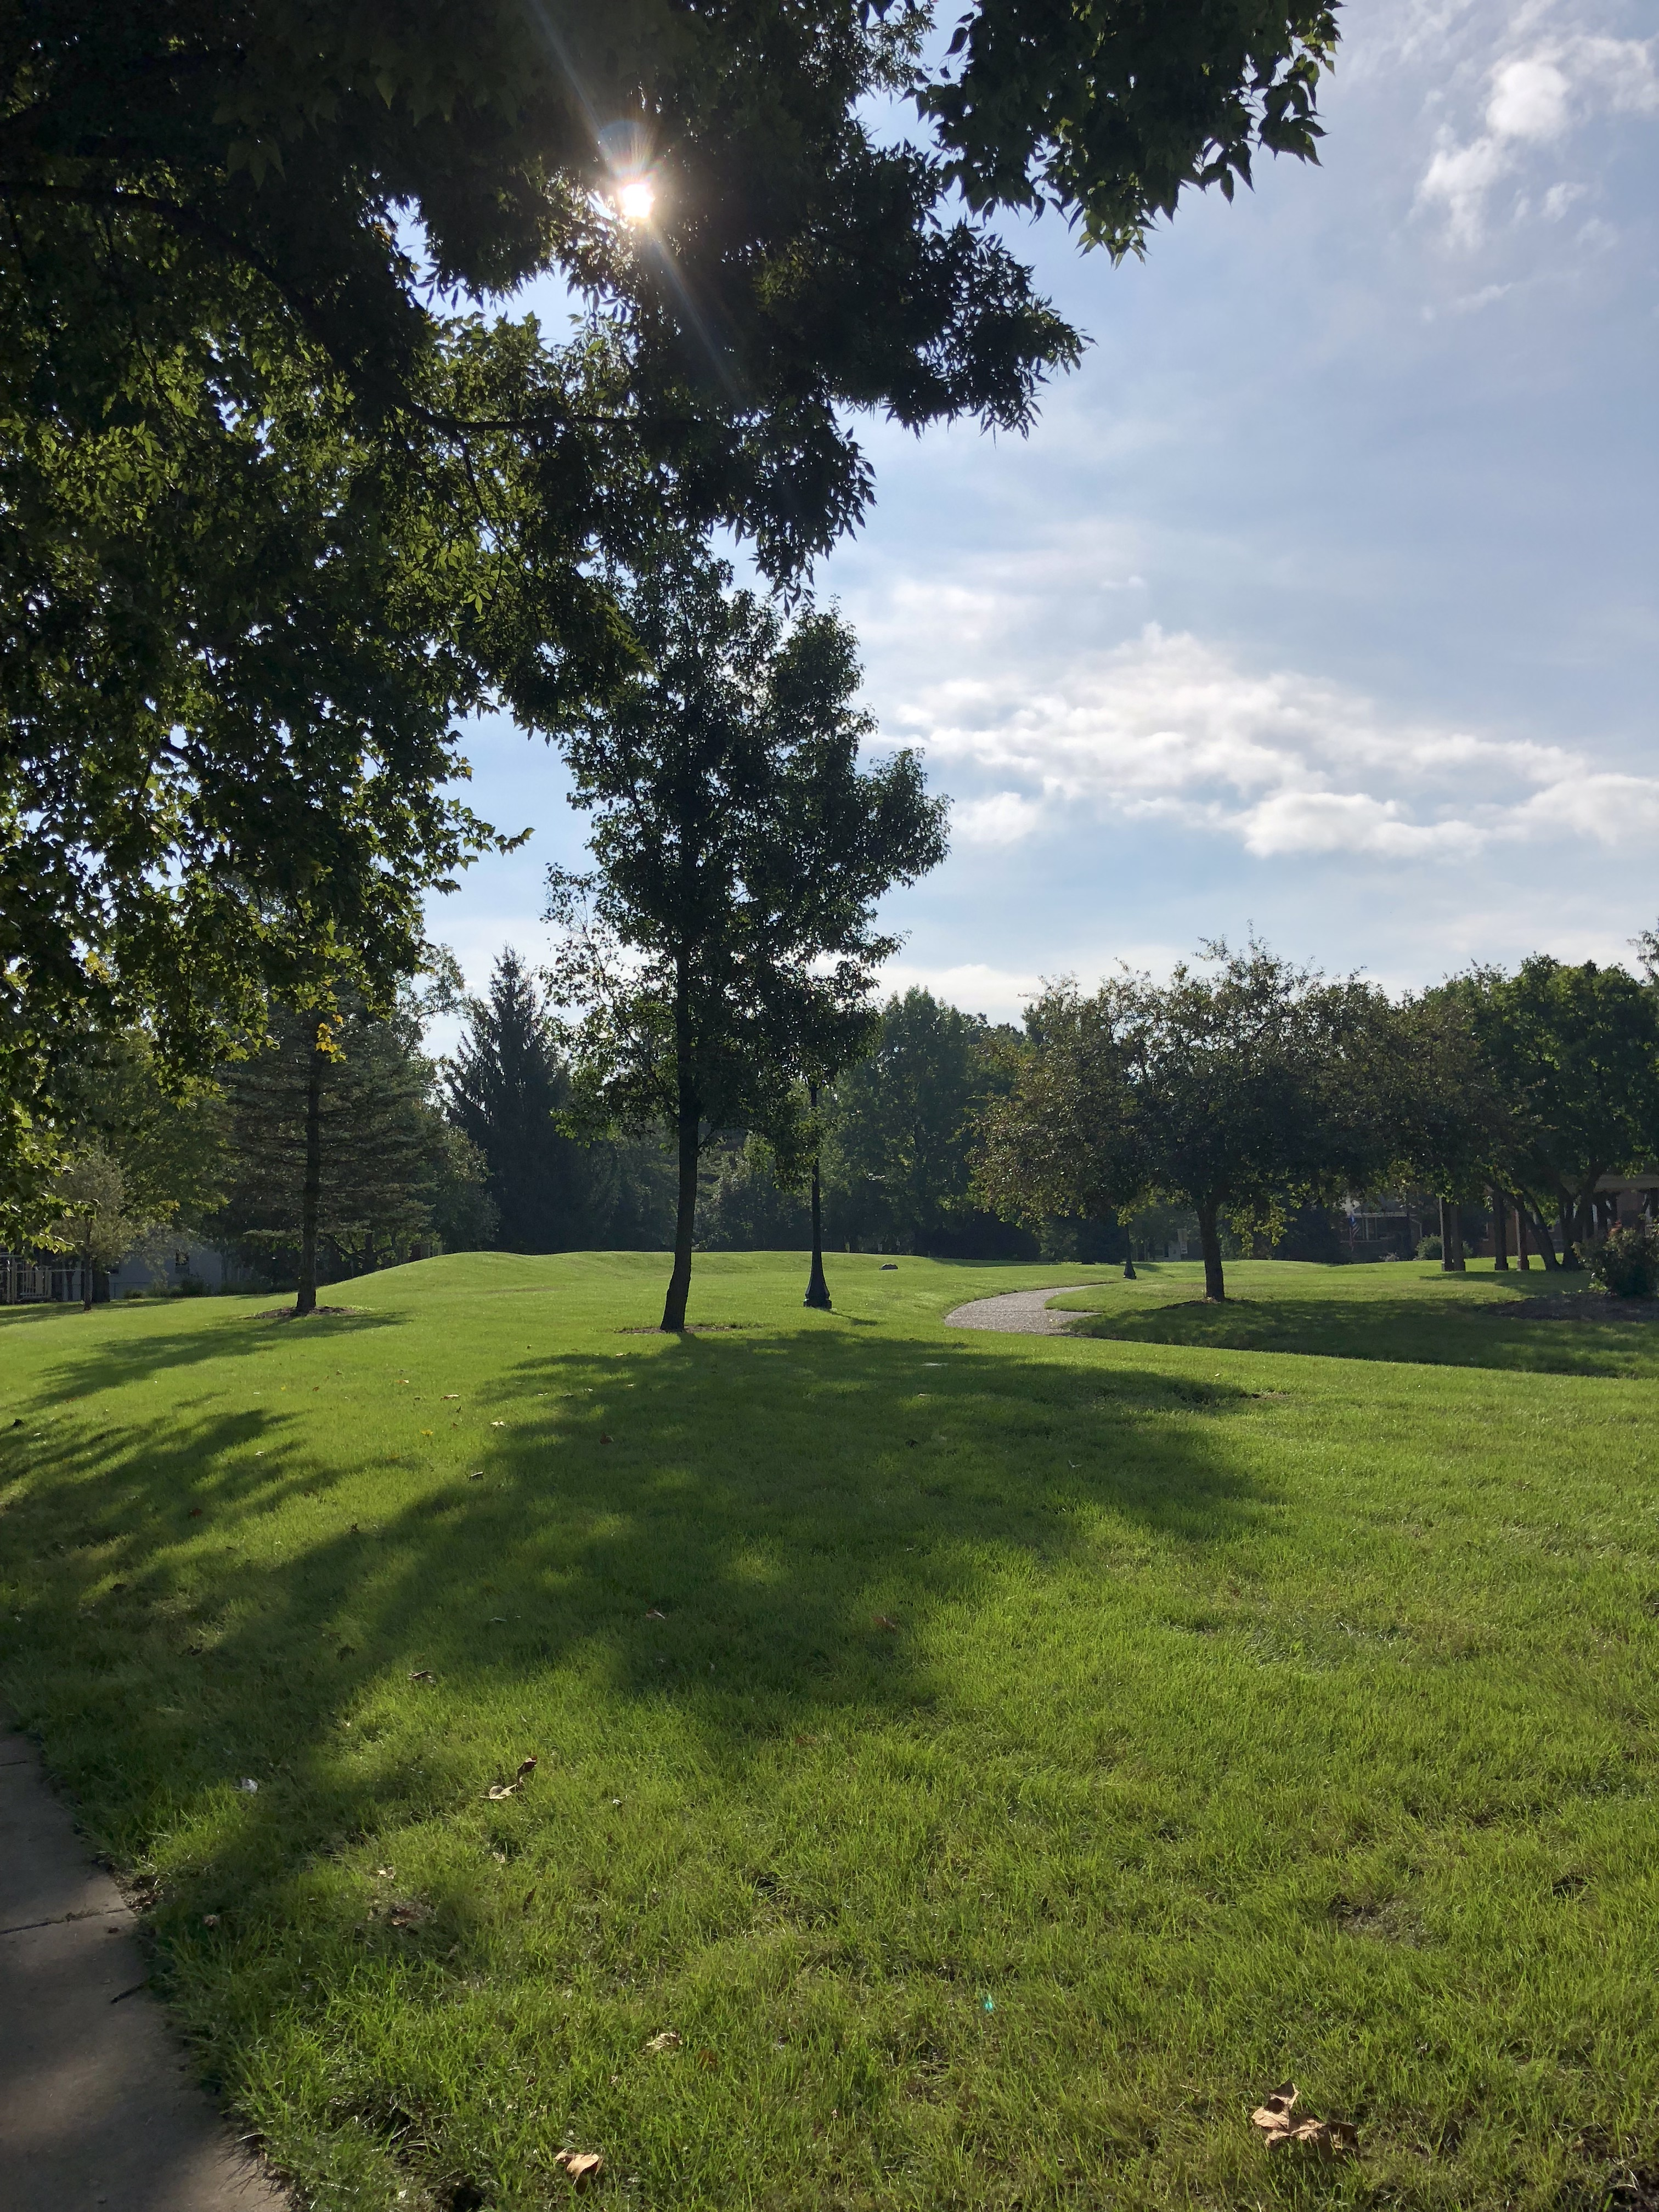 a picture of a green, grassy knoll in Noblesville, IN